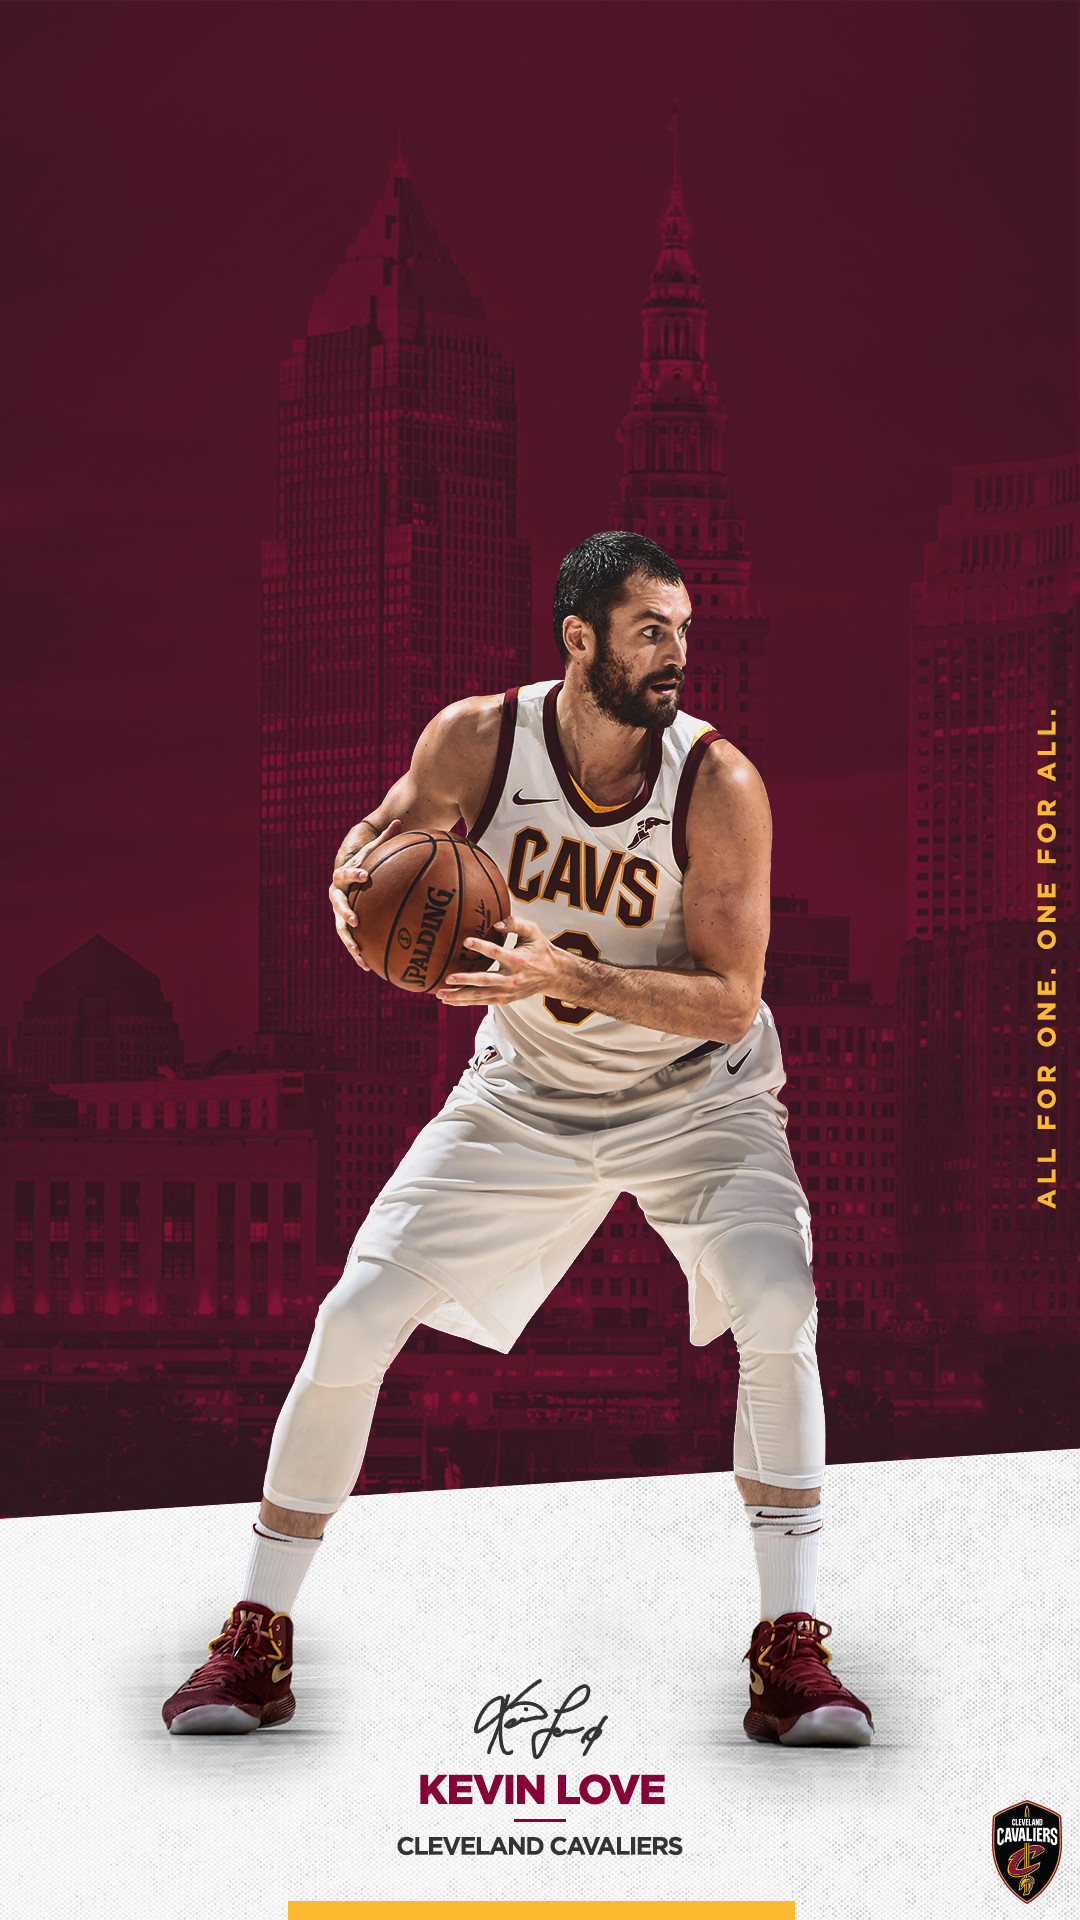 3955ac89dc95 ... low performance review nike hyperdunk 2016 flyknit performance 663cf  87af9  promo code for kevin love 2018 wallpaper 4e471 2d53f